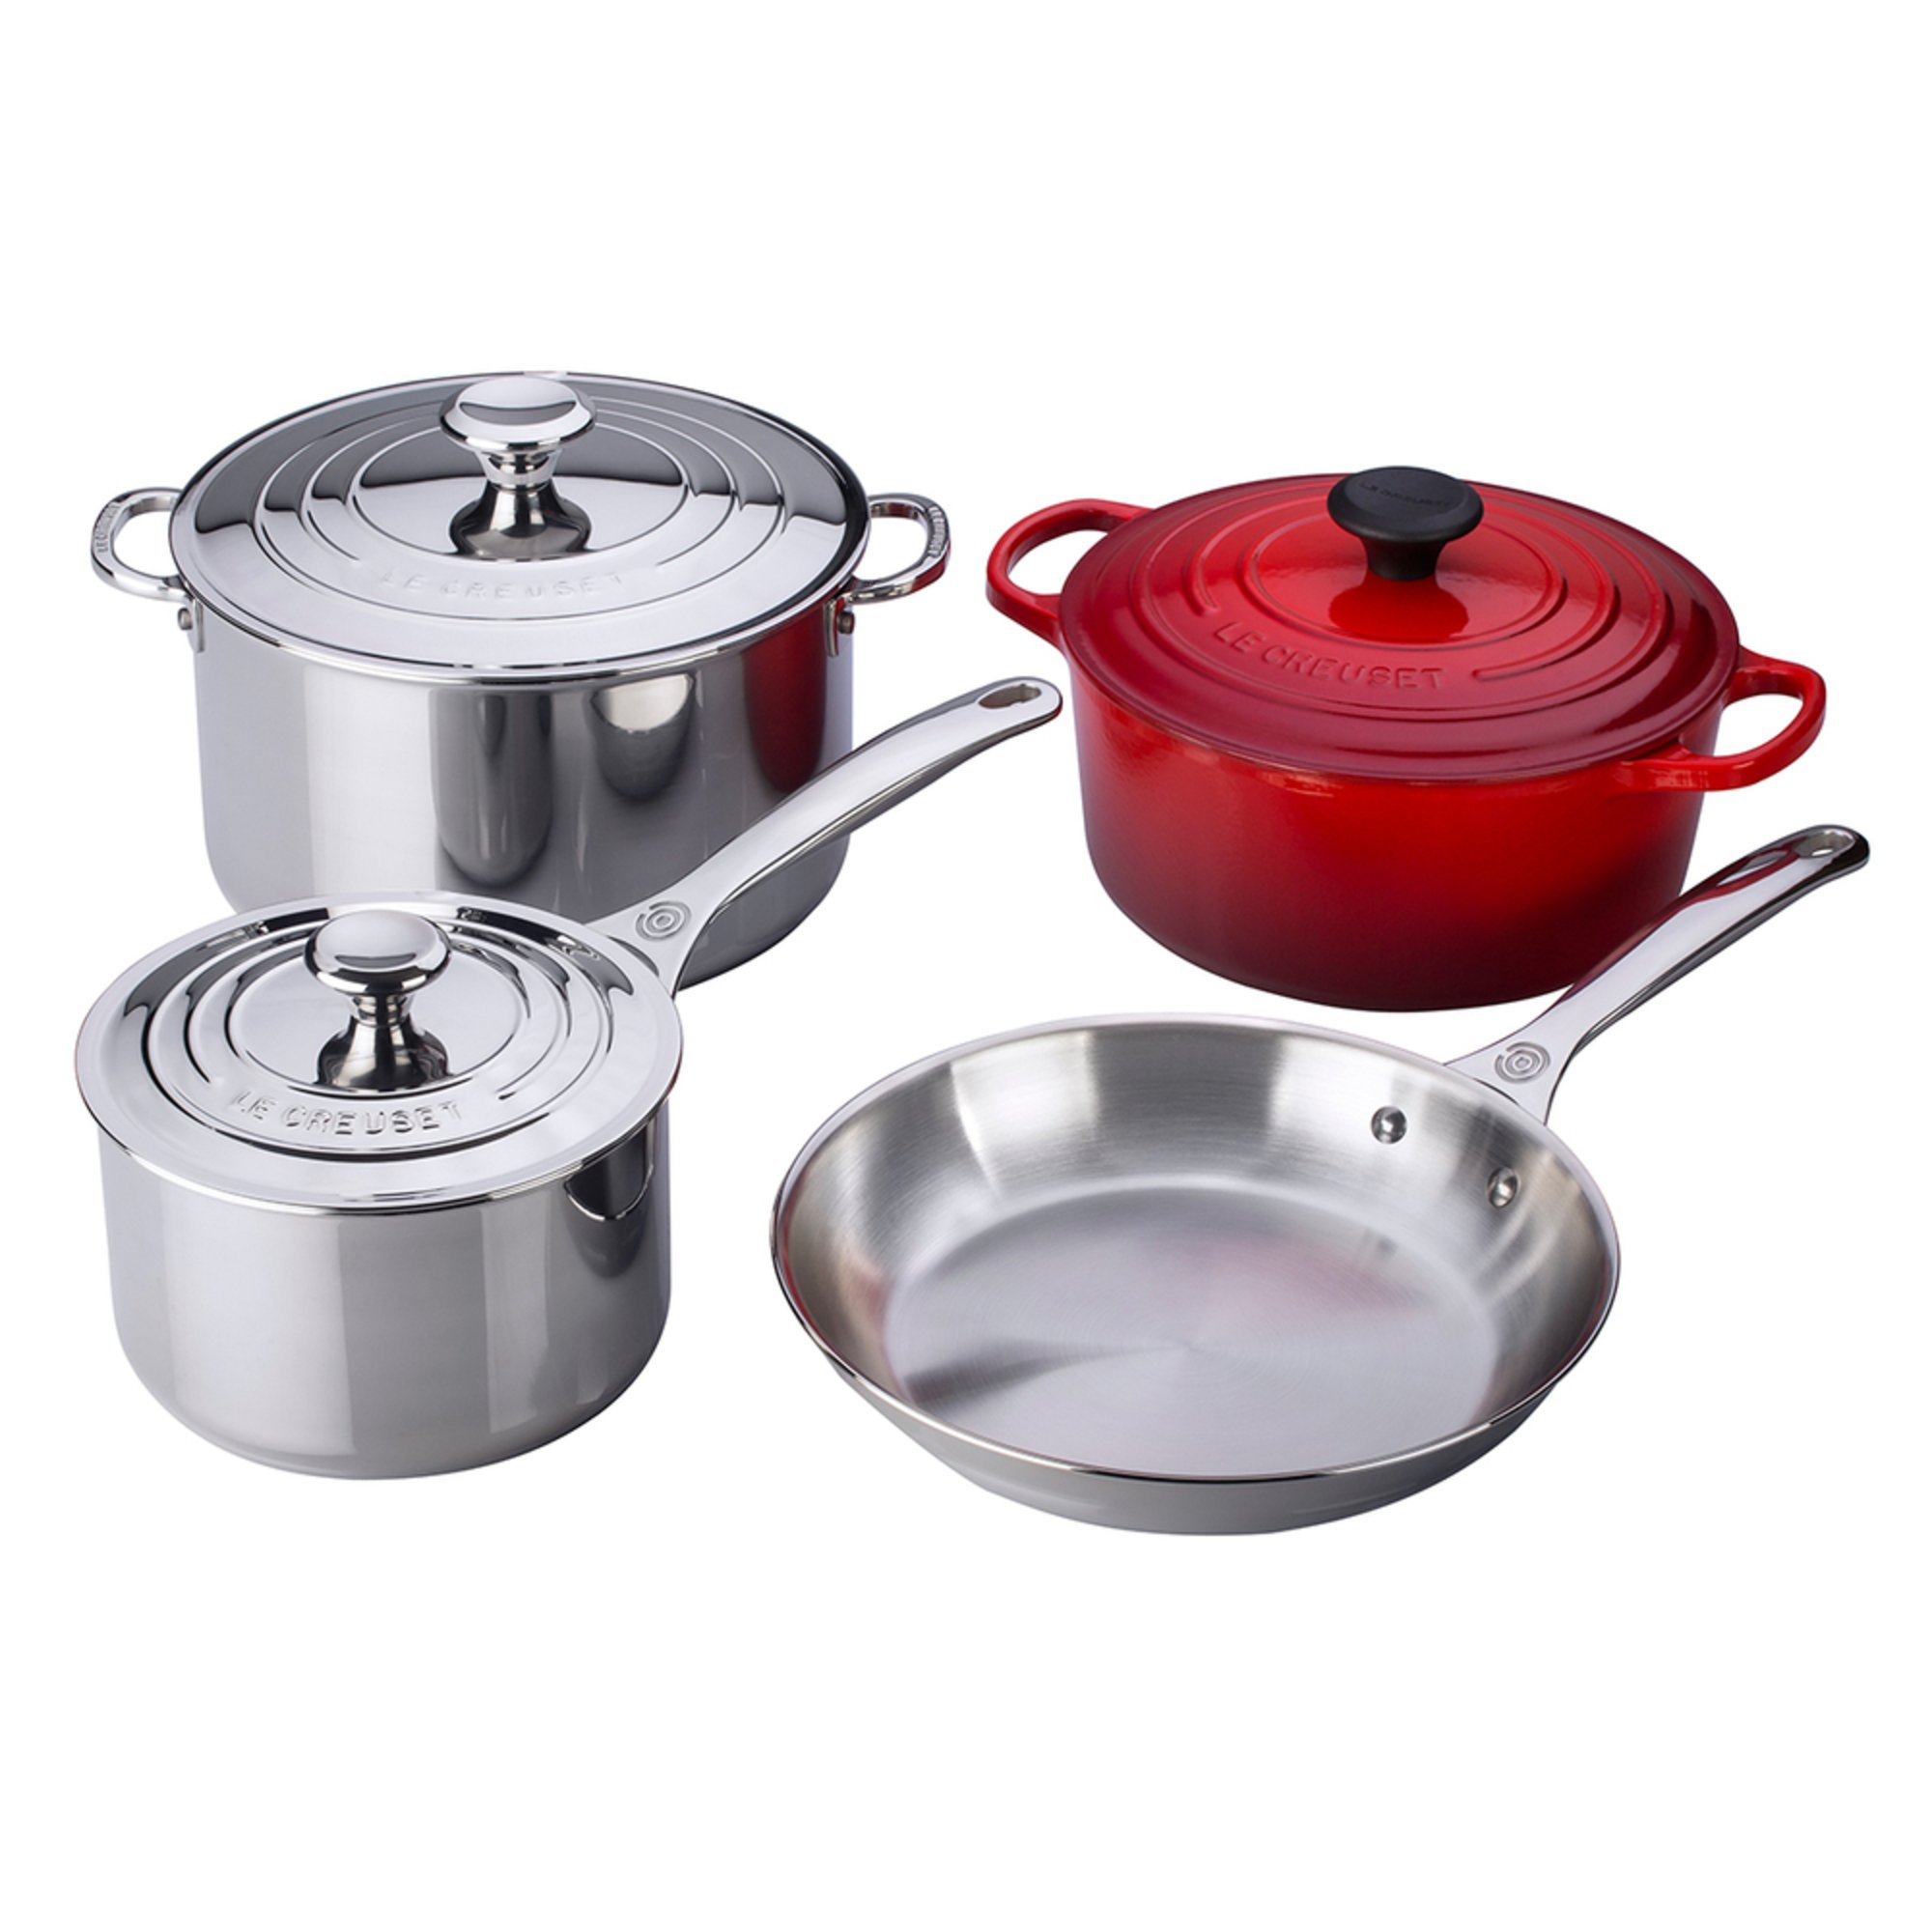 le creuset 7 piece stainless steel enameled cast iron cookware set cerise cookware sets. Black Bedroom Furniture Sets. Home Design Ideas